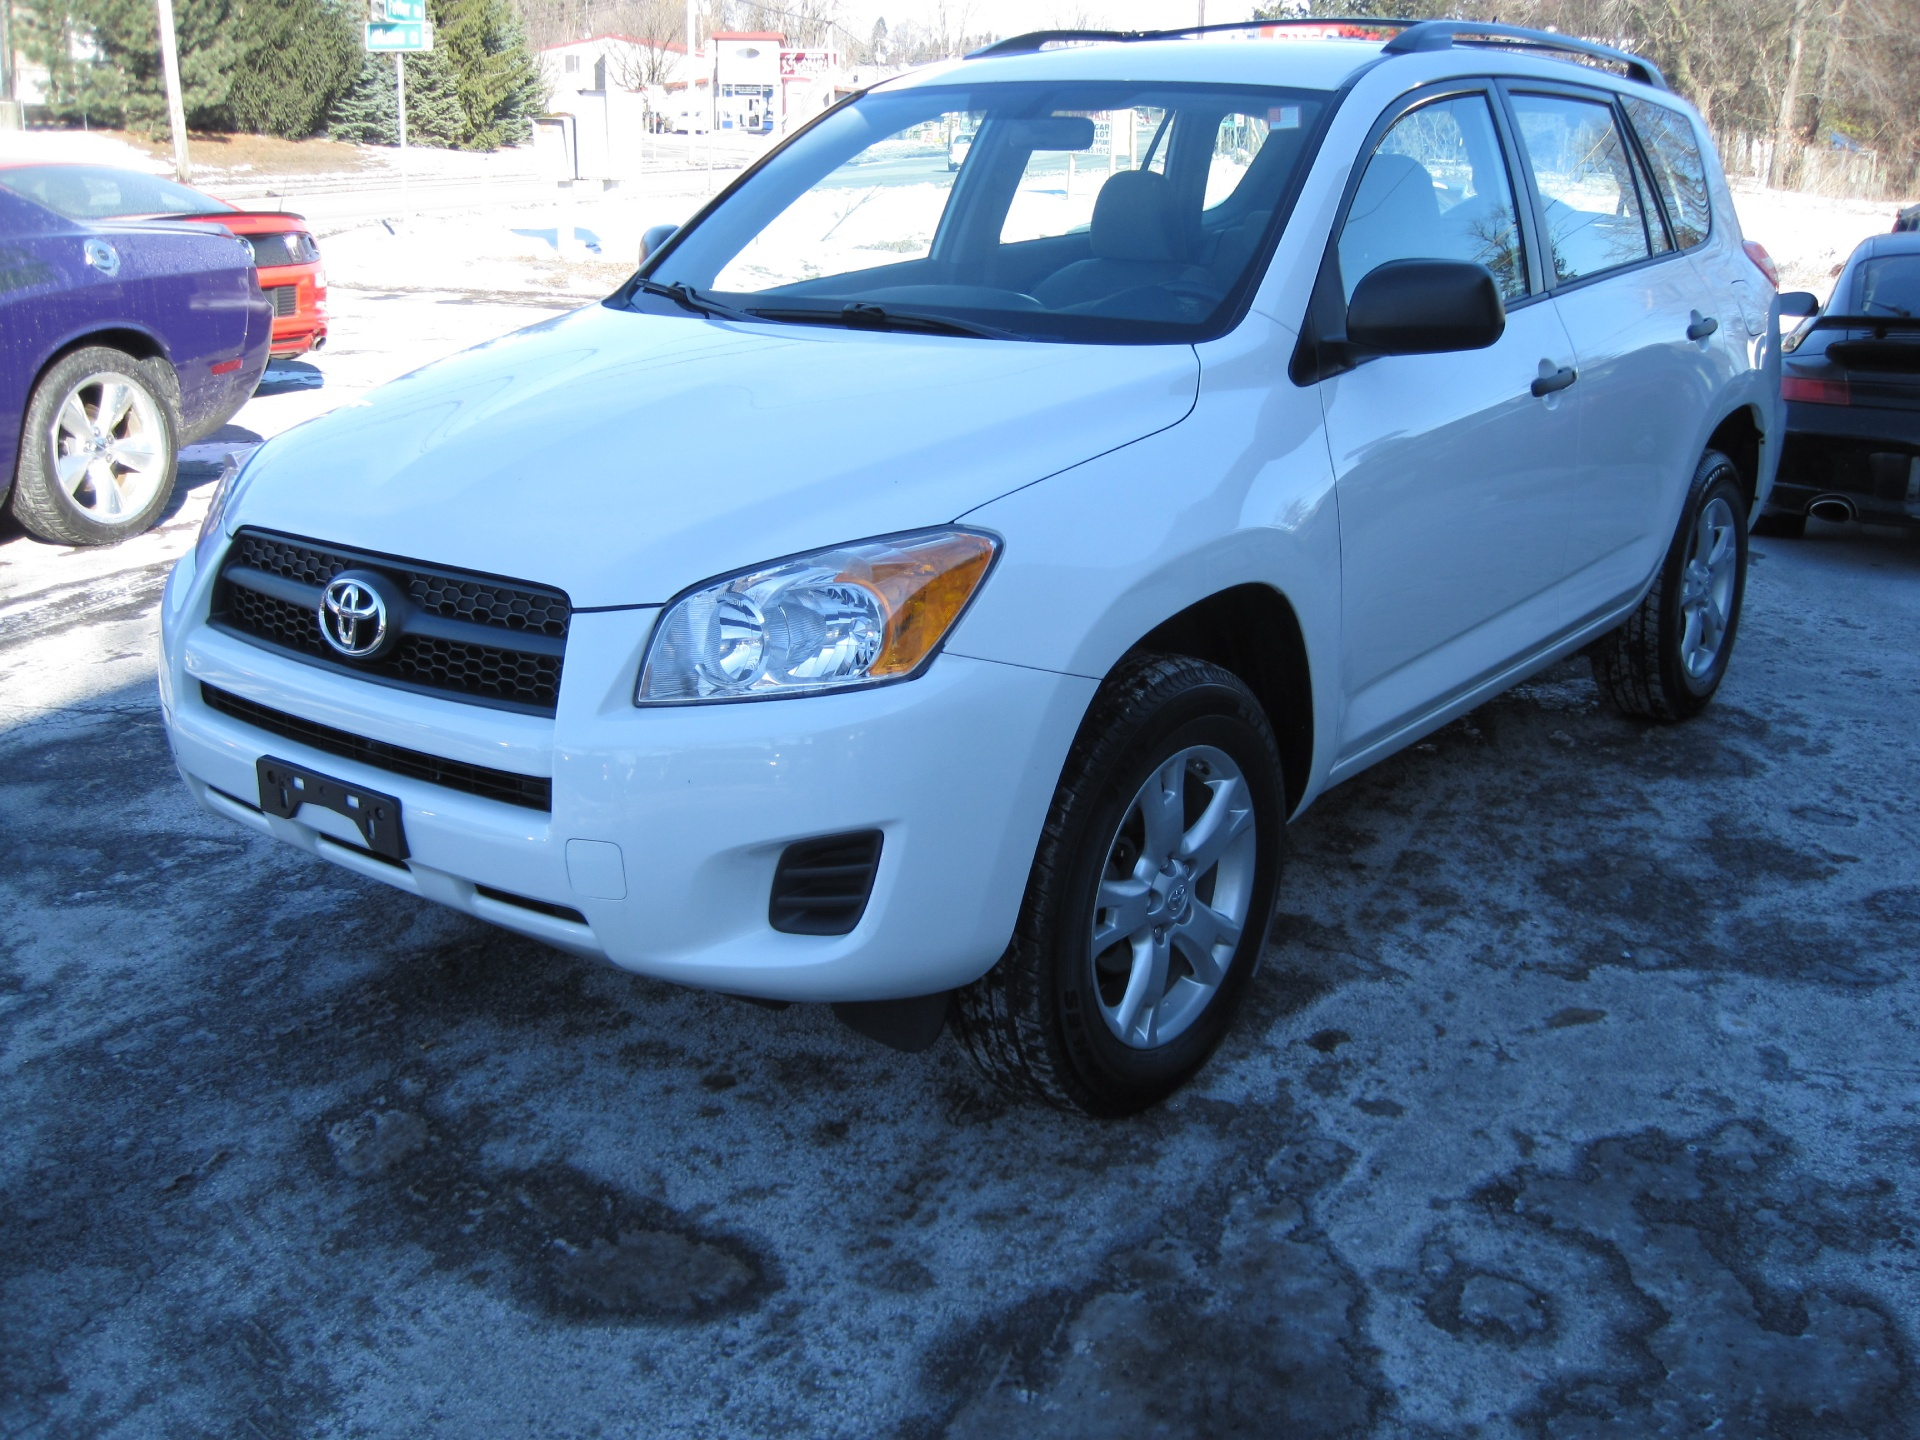 2009 toyota rav4 4wd local new car trade 2 owner stock 15014 for sale near albany ny ny. Black Bedroom Furniture Sets. Home Design Ideas